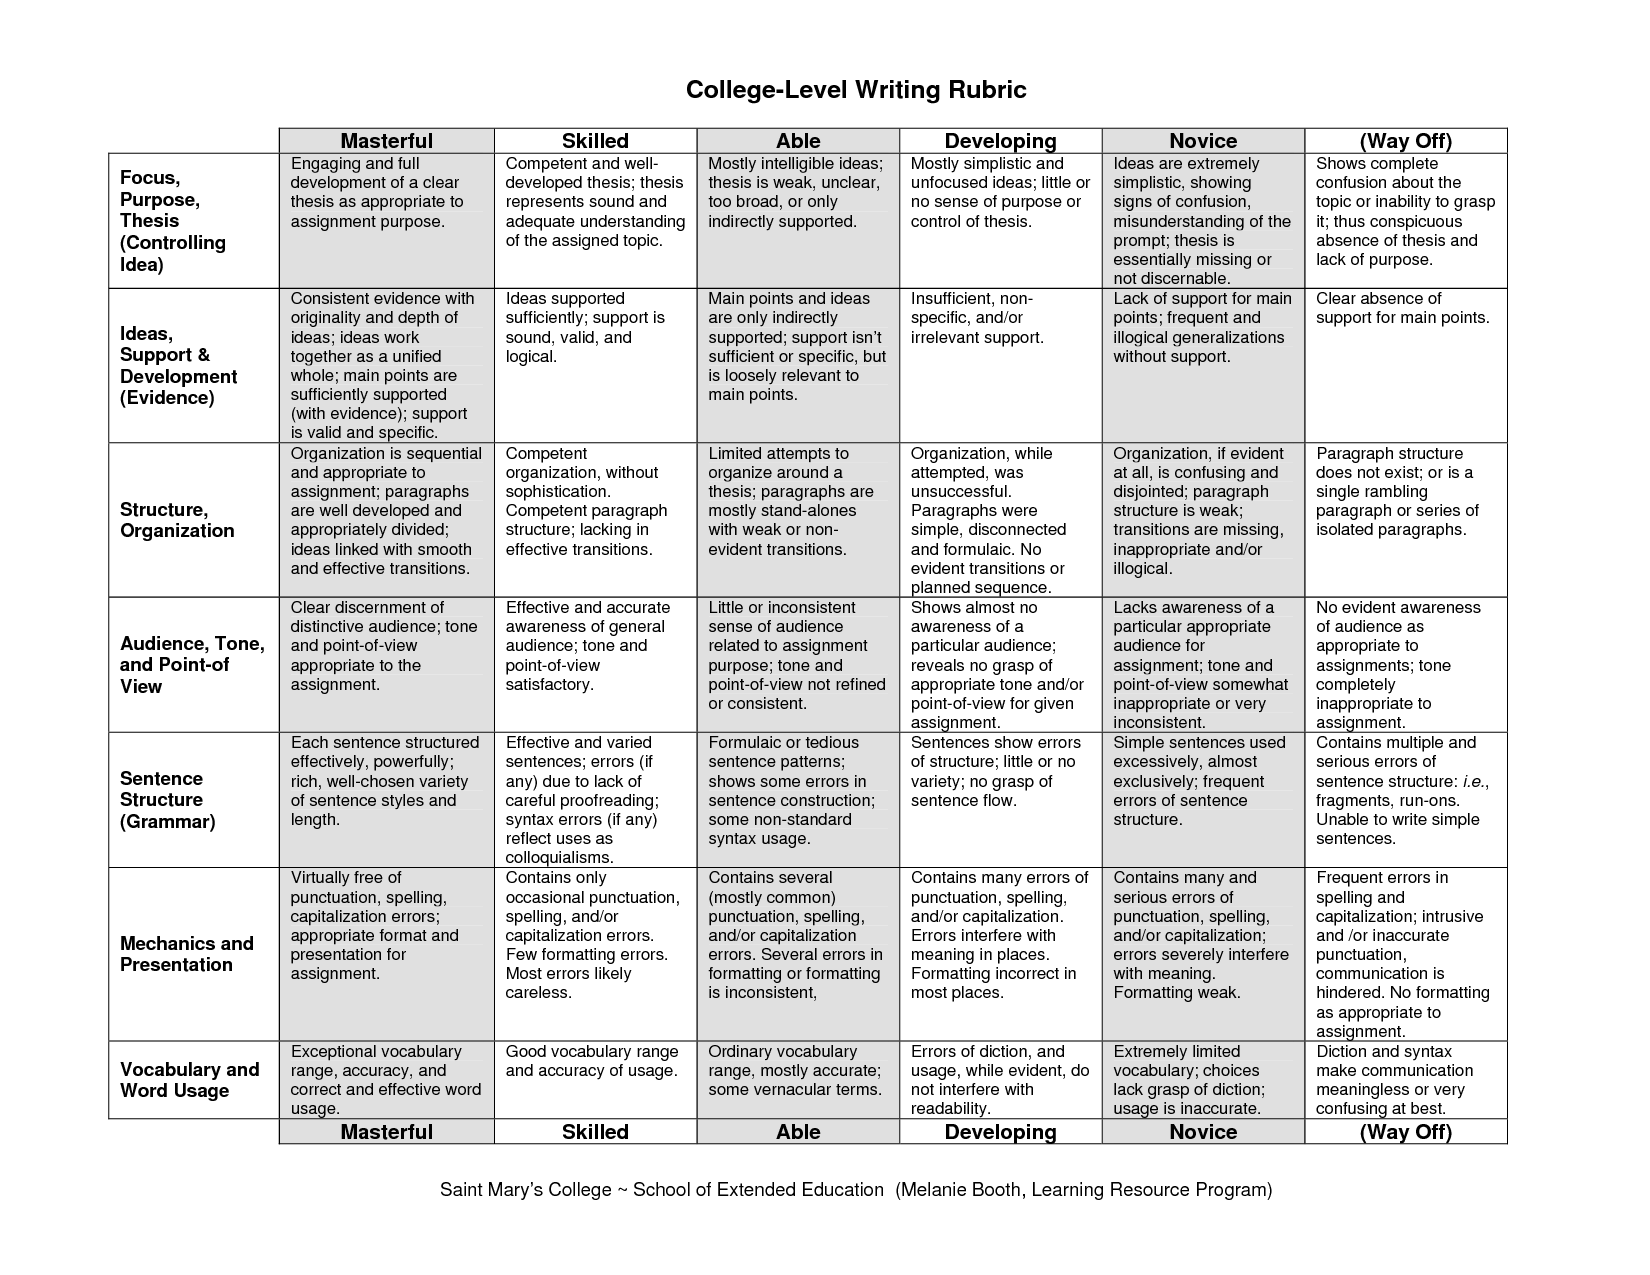 essay rubrics for middle school Enter the writing rubric, which is a type of grading tool used to evaluate student writing writing rubrics serve as checklists that describe the elements of good writing—checklists that are shared with students thanks to the writing rubric, now teachers and students know what makes an a+ essay writing rubrics help.